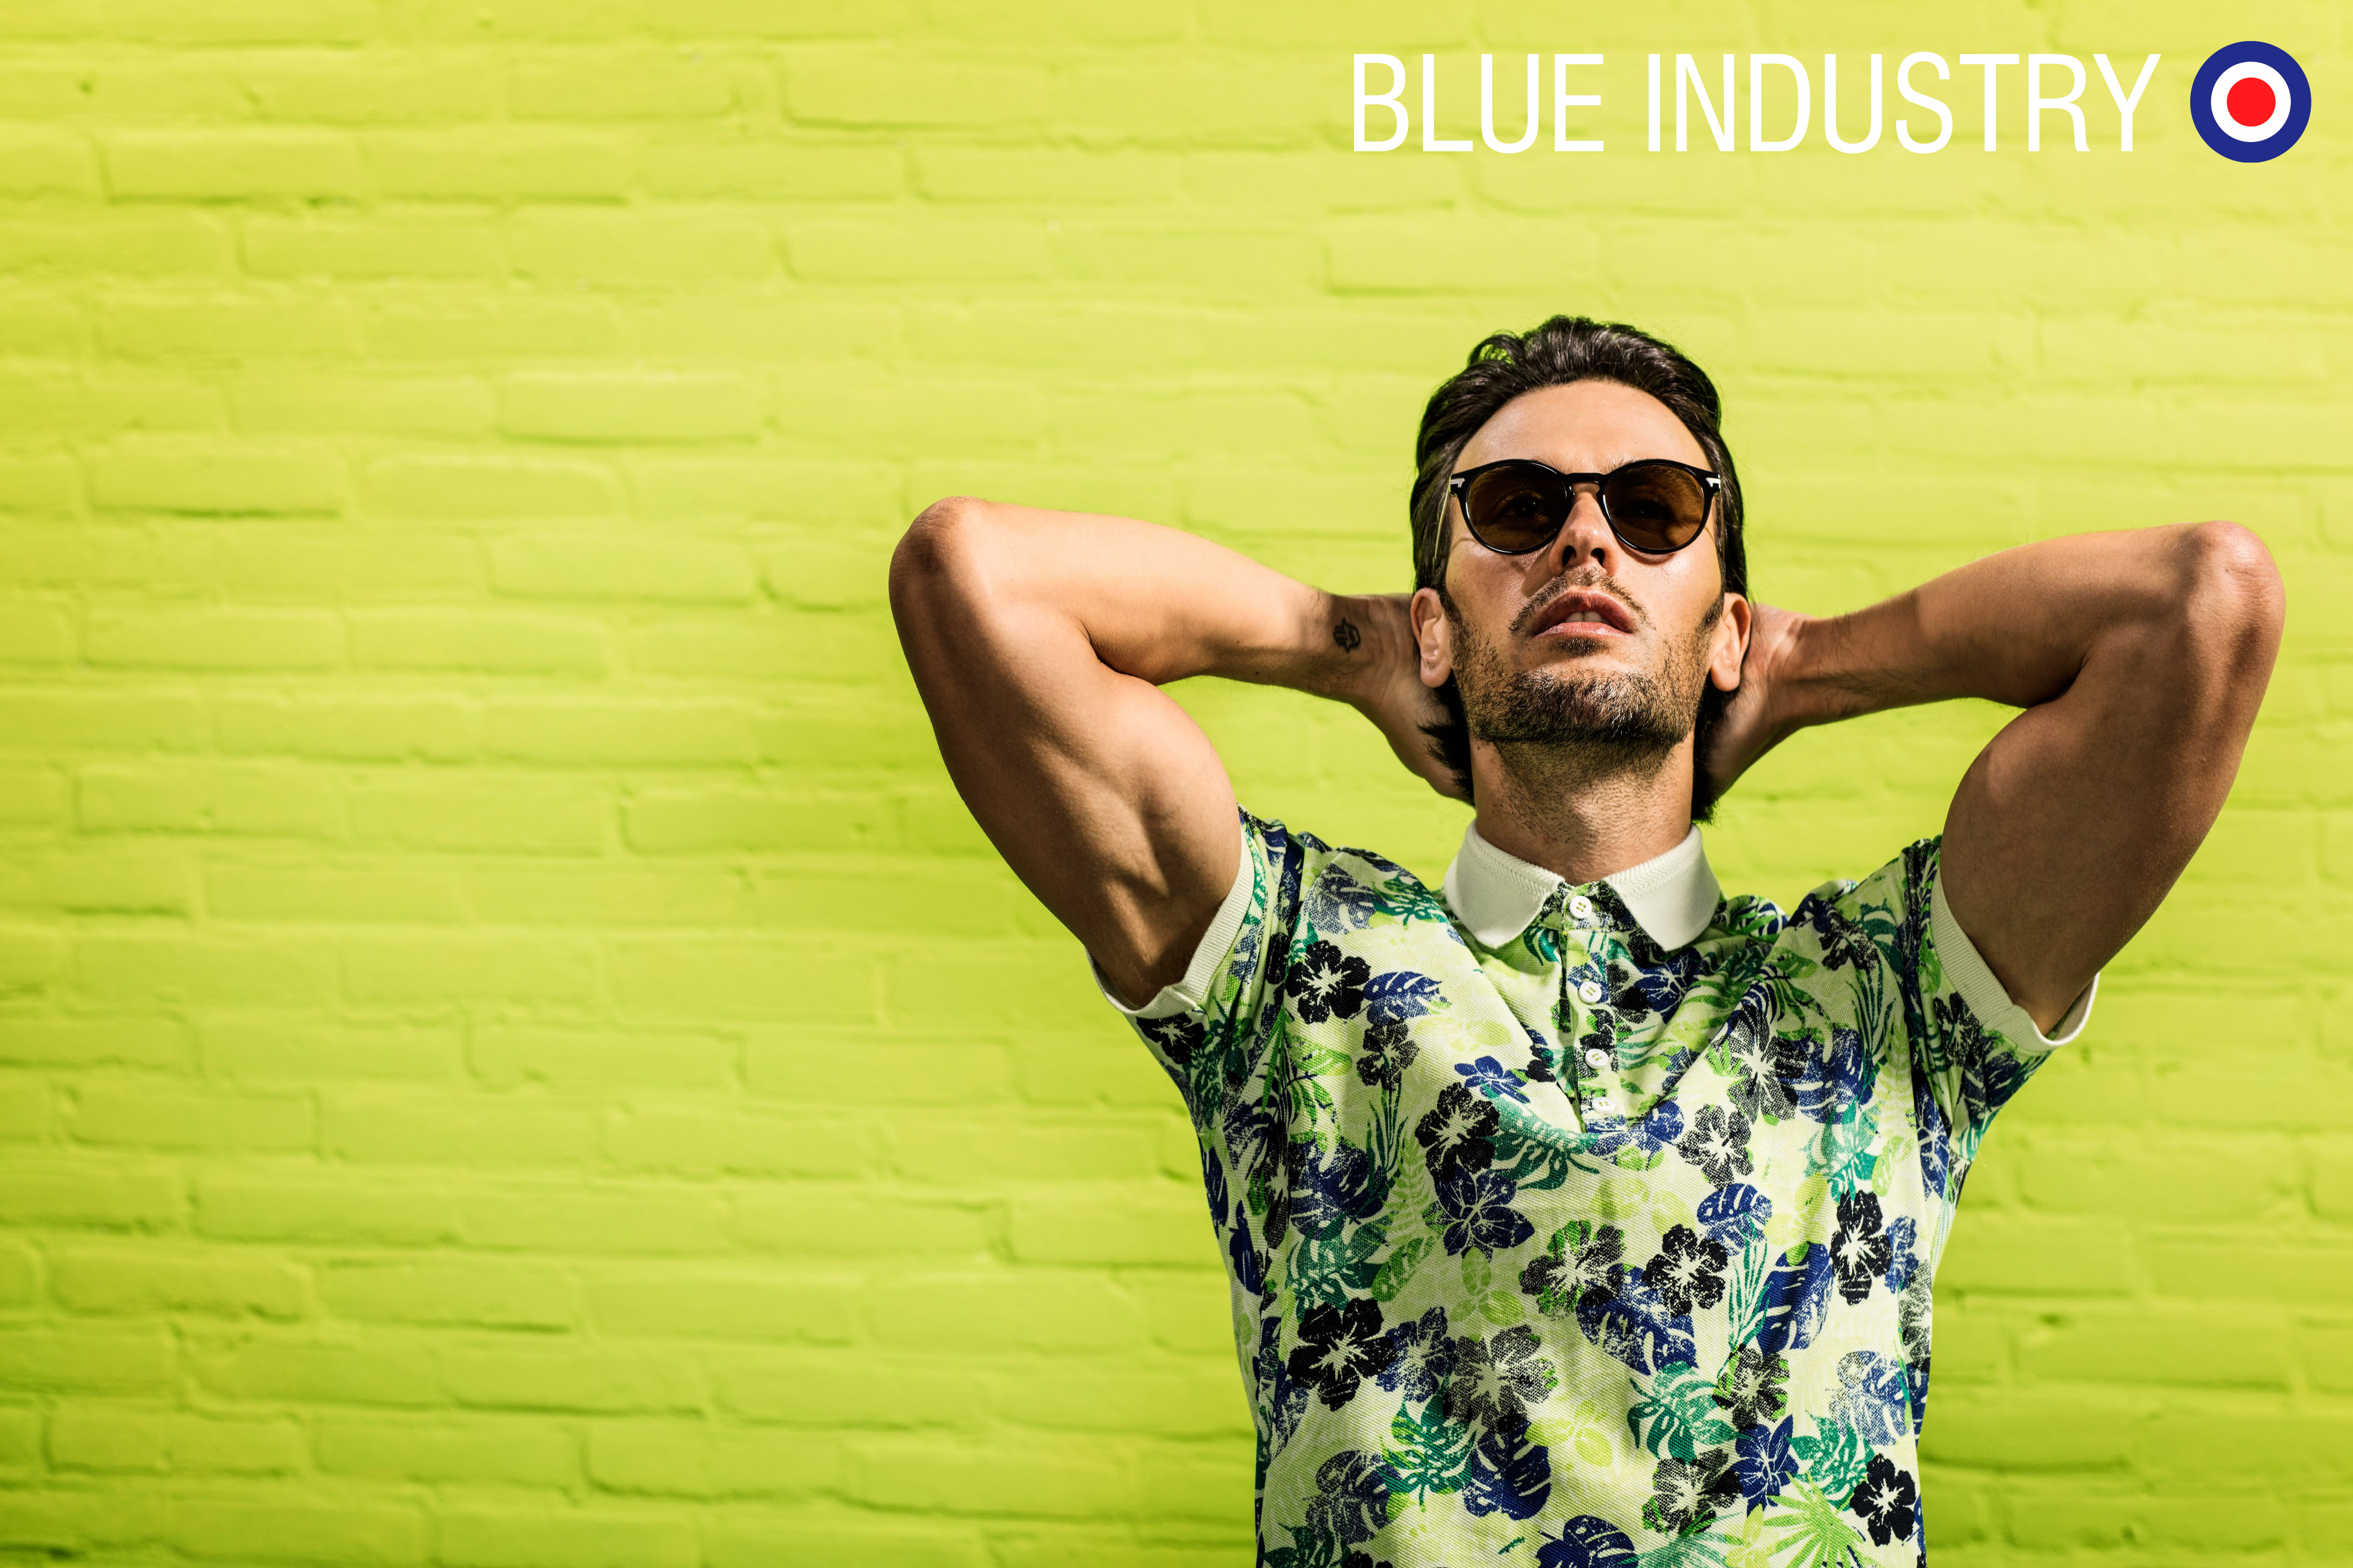 Blue Industry polo's